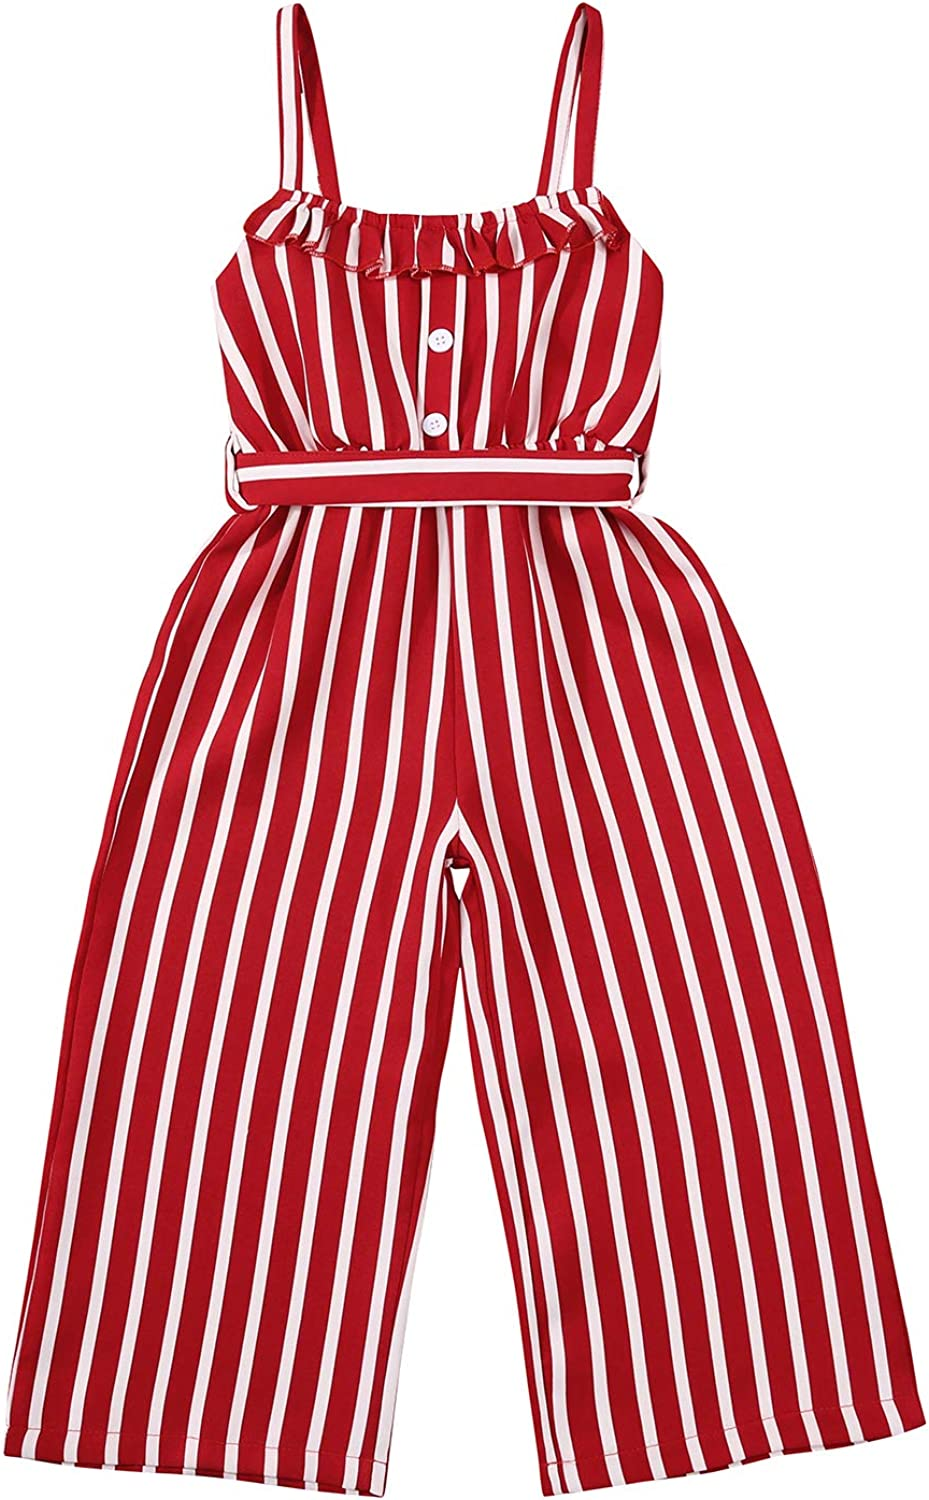 Alyweatry online shop 2021 Toddler Store Little Girls One-Pieces Romper Ju Striped